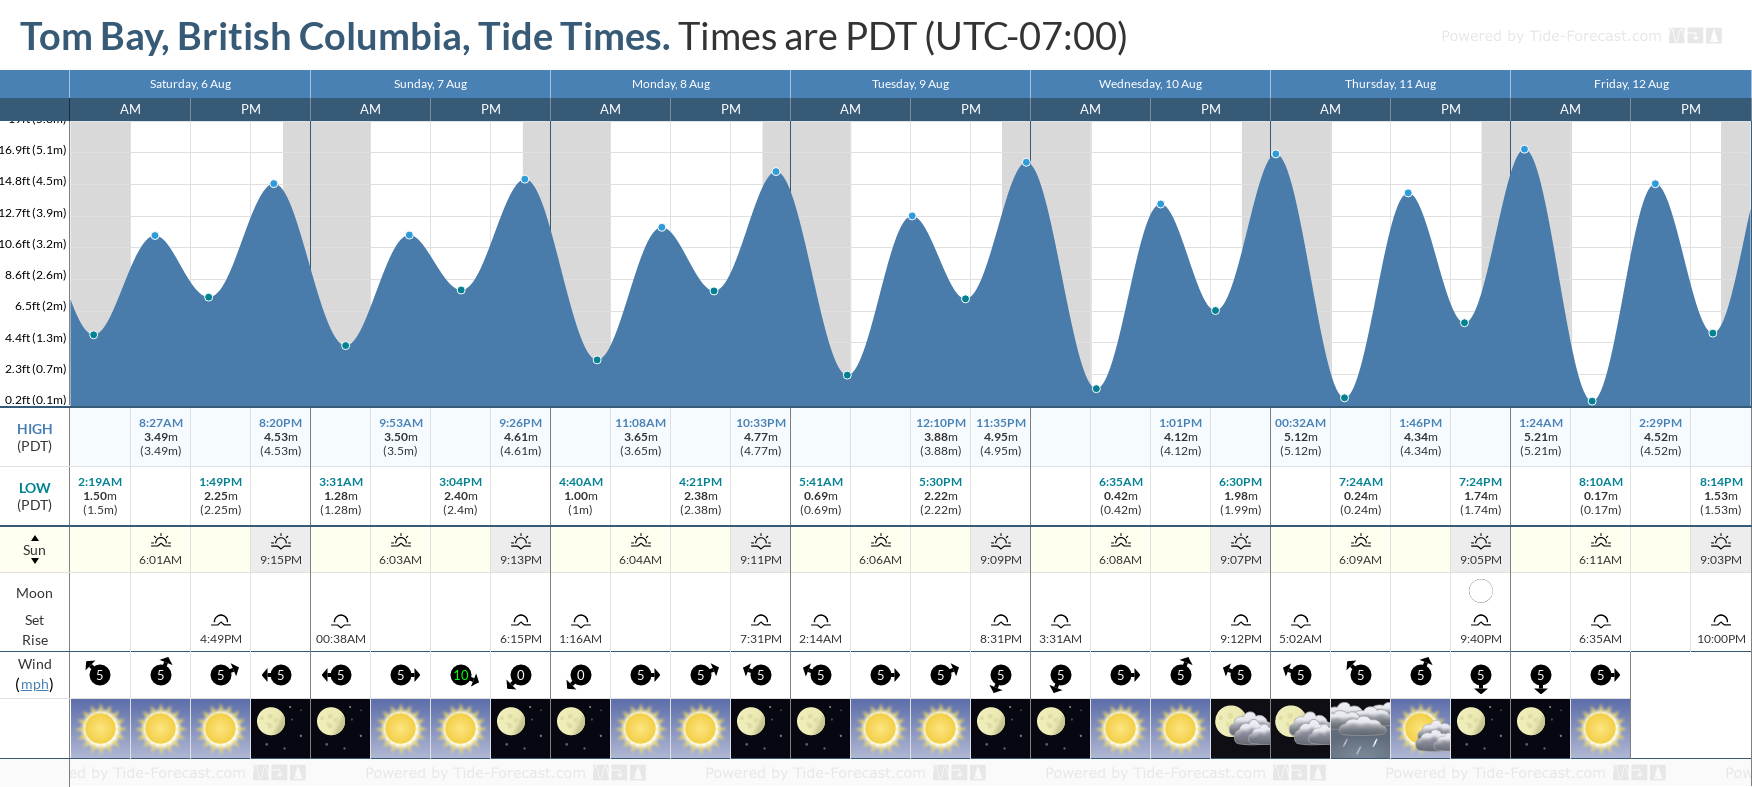 Tom Bay, British Columbia Tide Chart including high and low tide tide times for the next 7 days